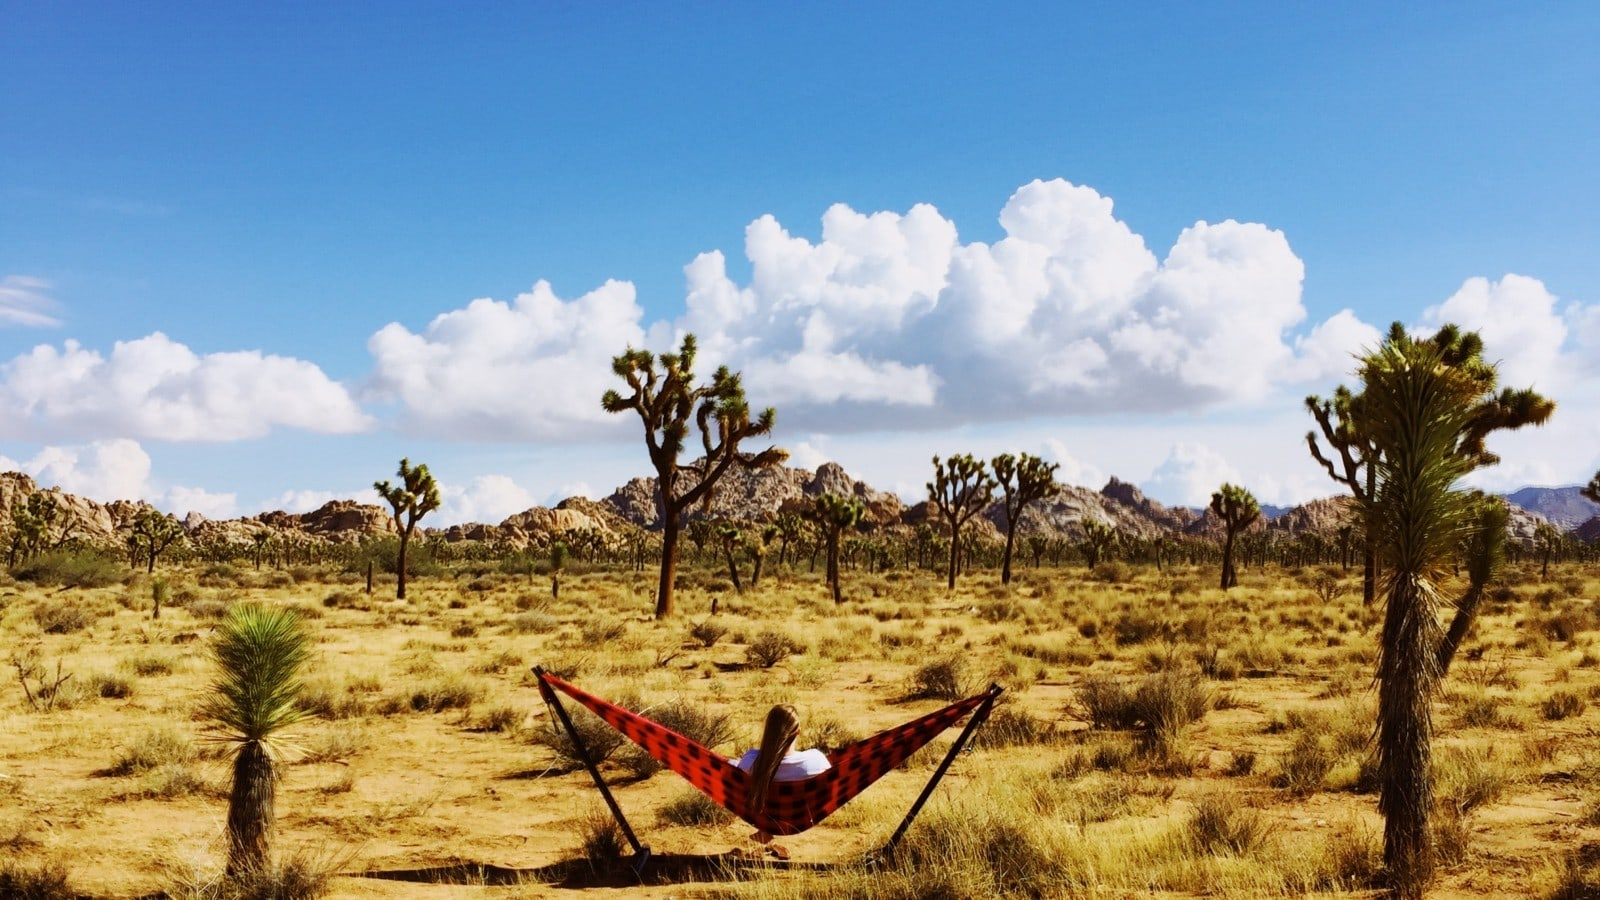 Hanging with Care in Joshua Tree National Park